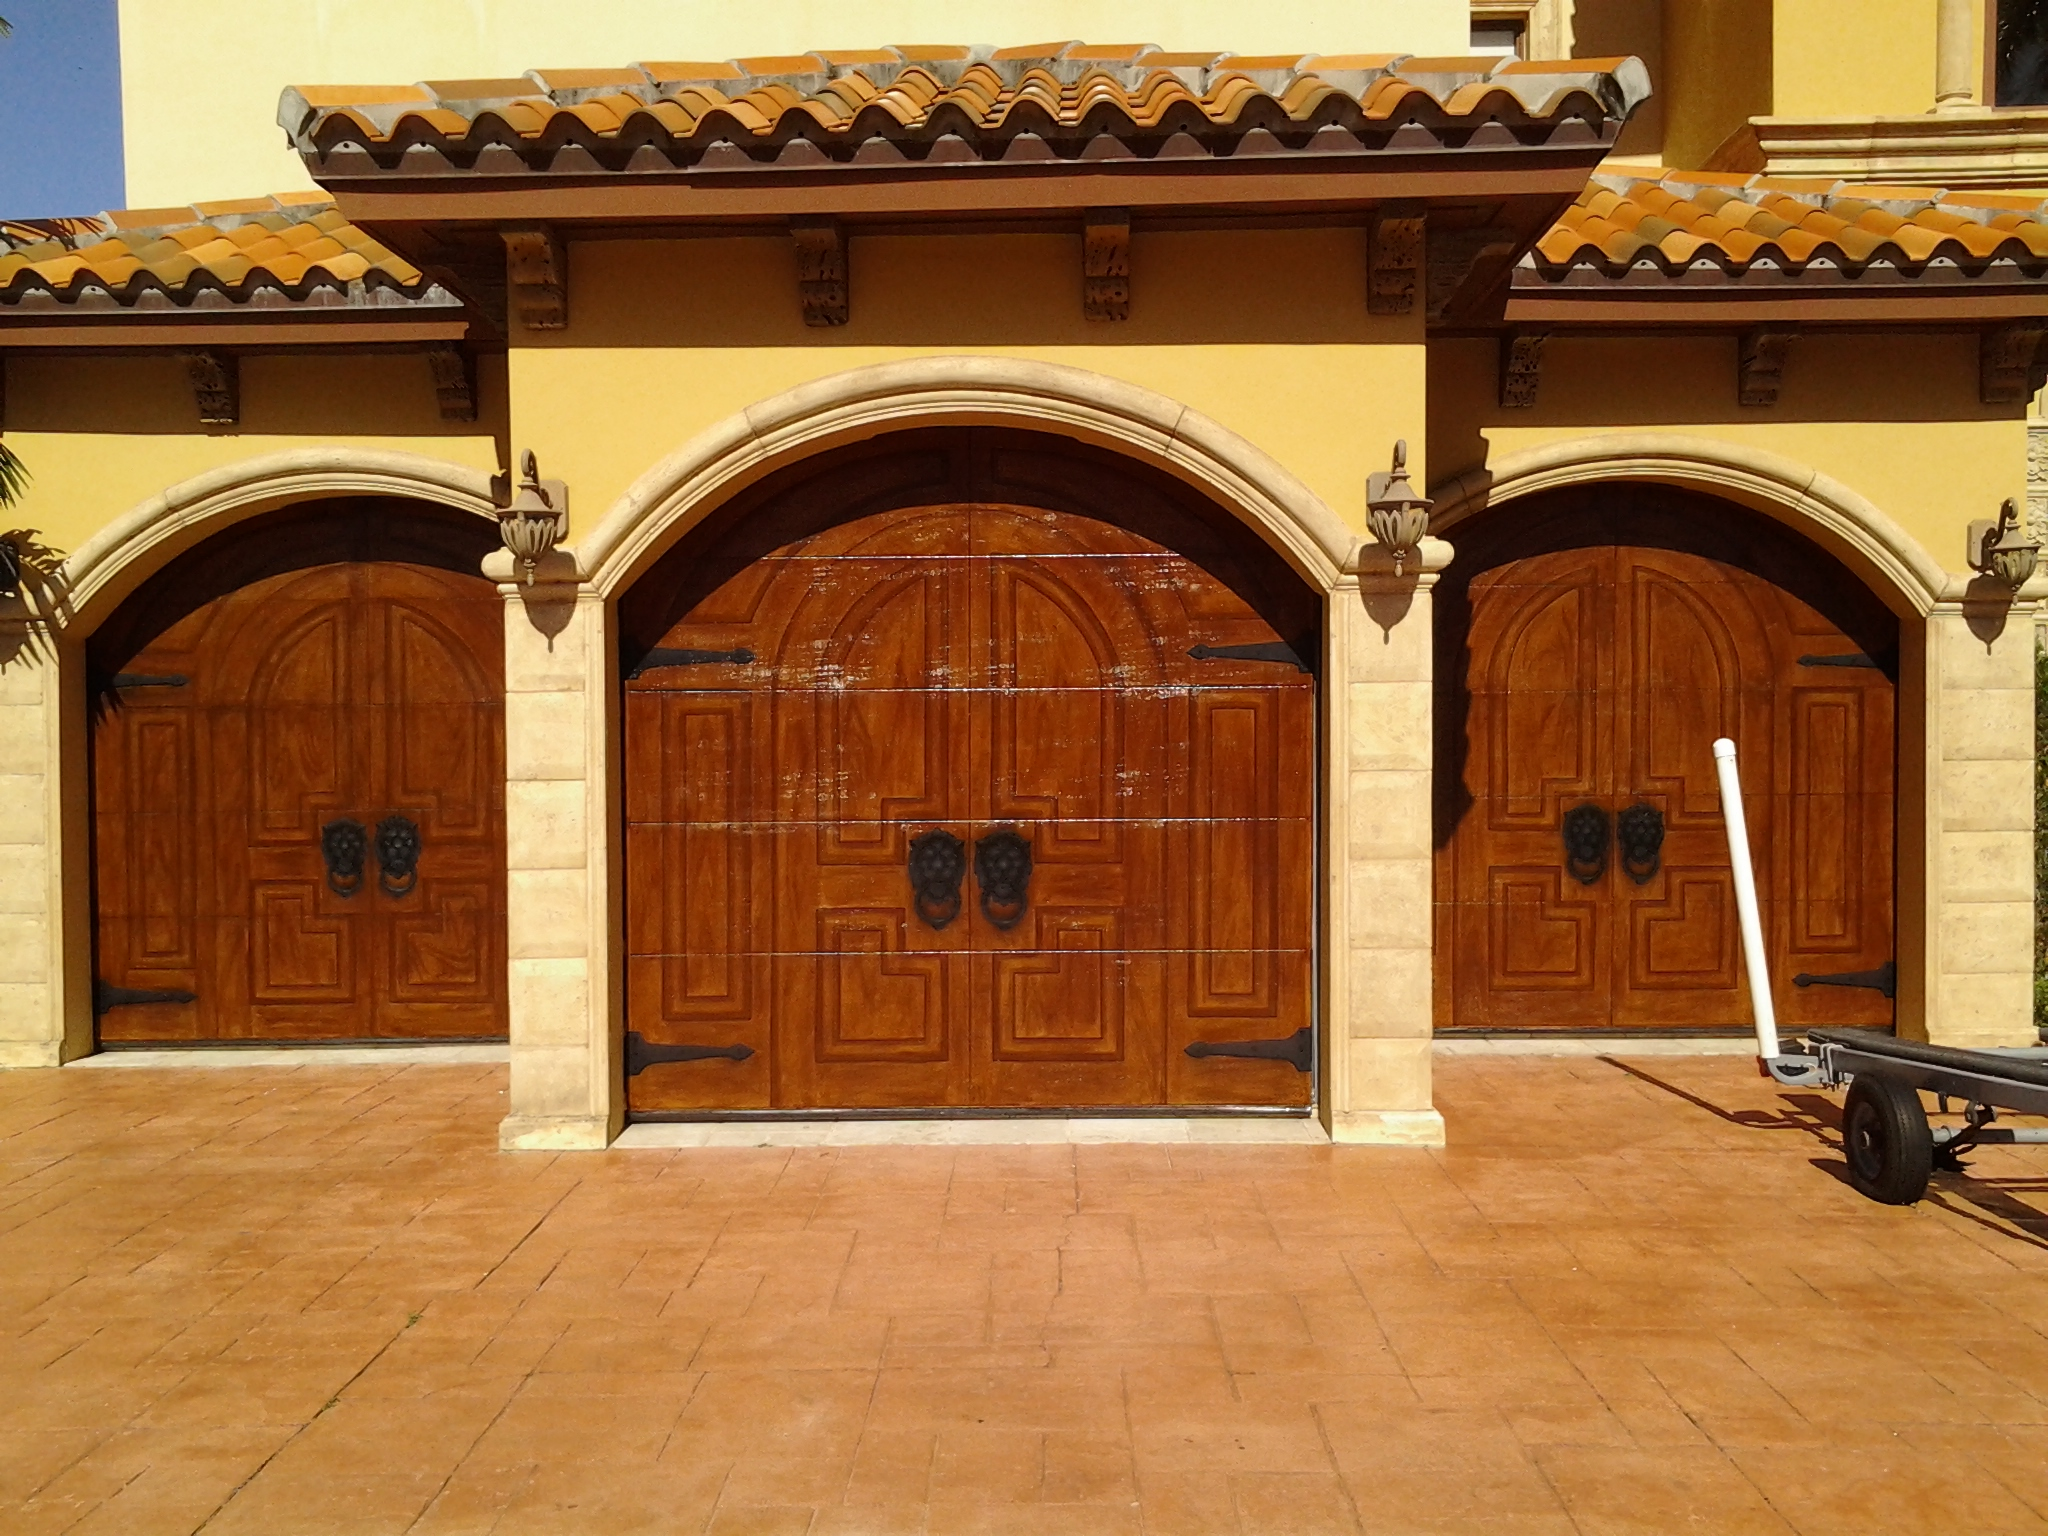 fancinating garage door costco with solid hard wood material plus good door panel combined with tile & Costco Garage Door Designs That Present You Gorgeous Garage ... pezcame.com